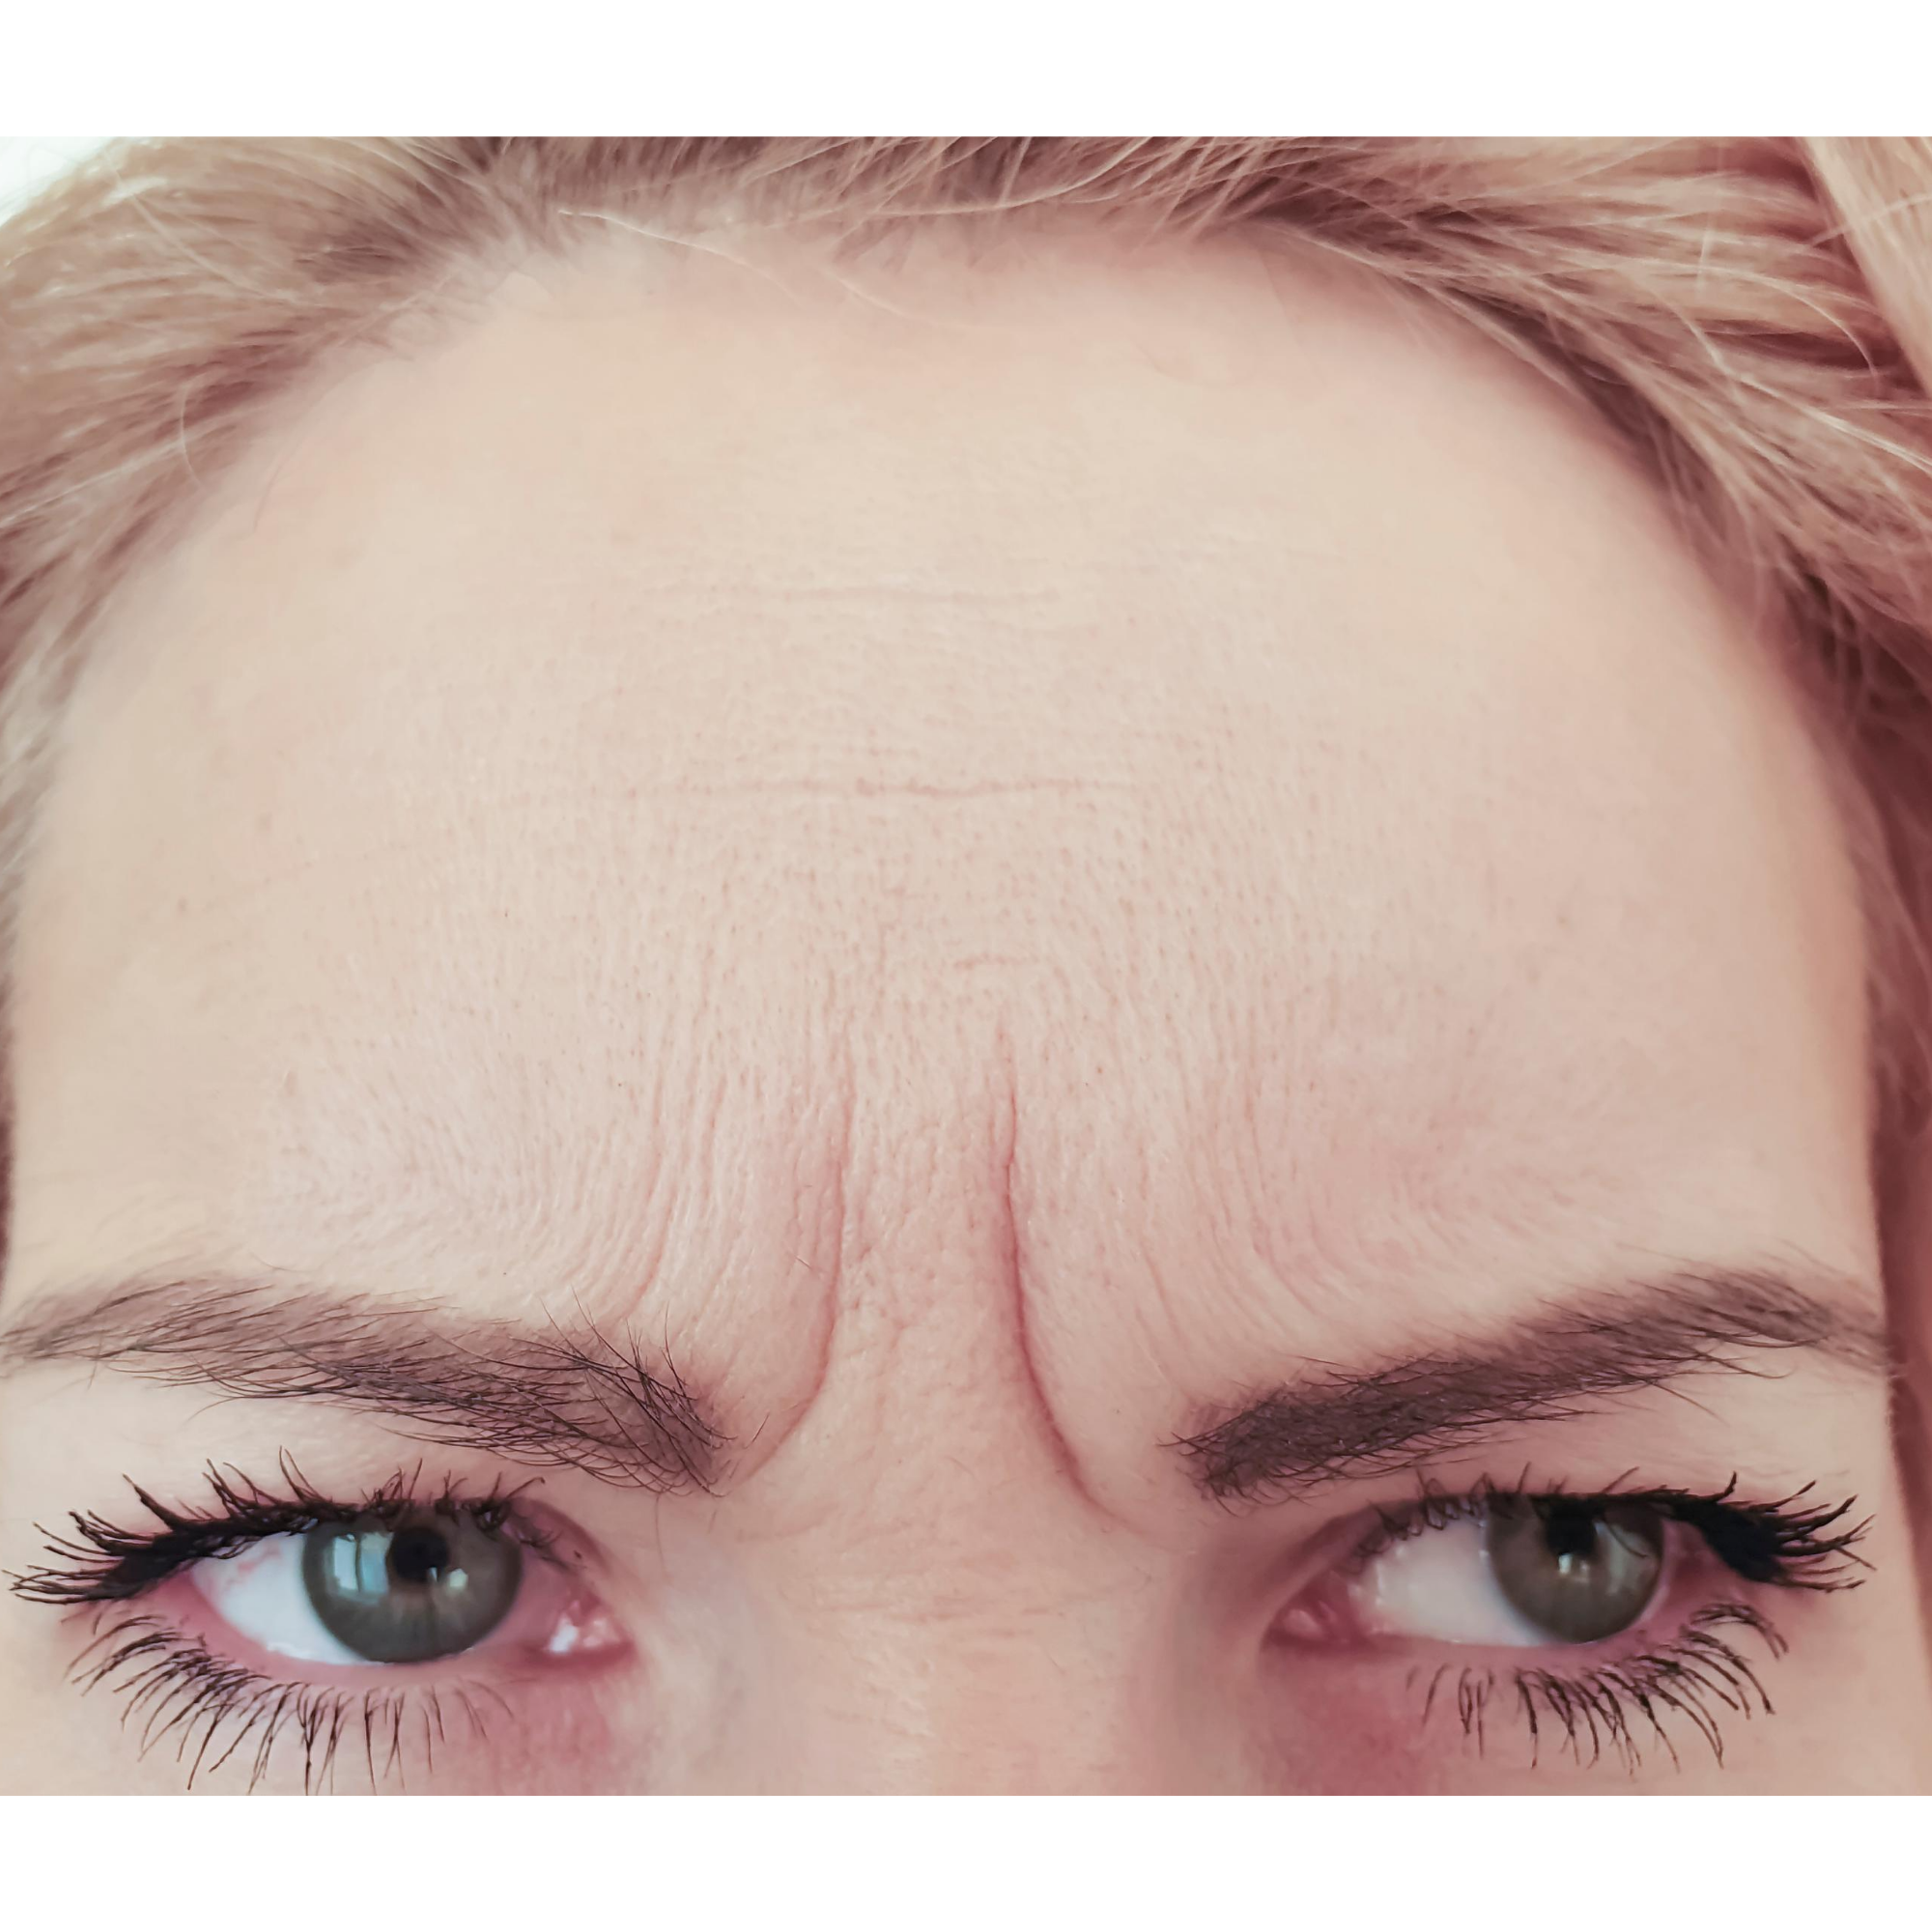 Fine lines and Wrinkles in Mature skin